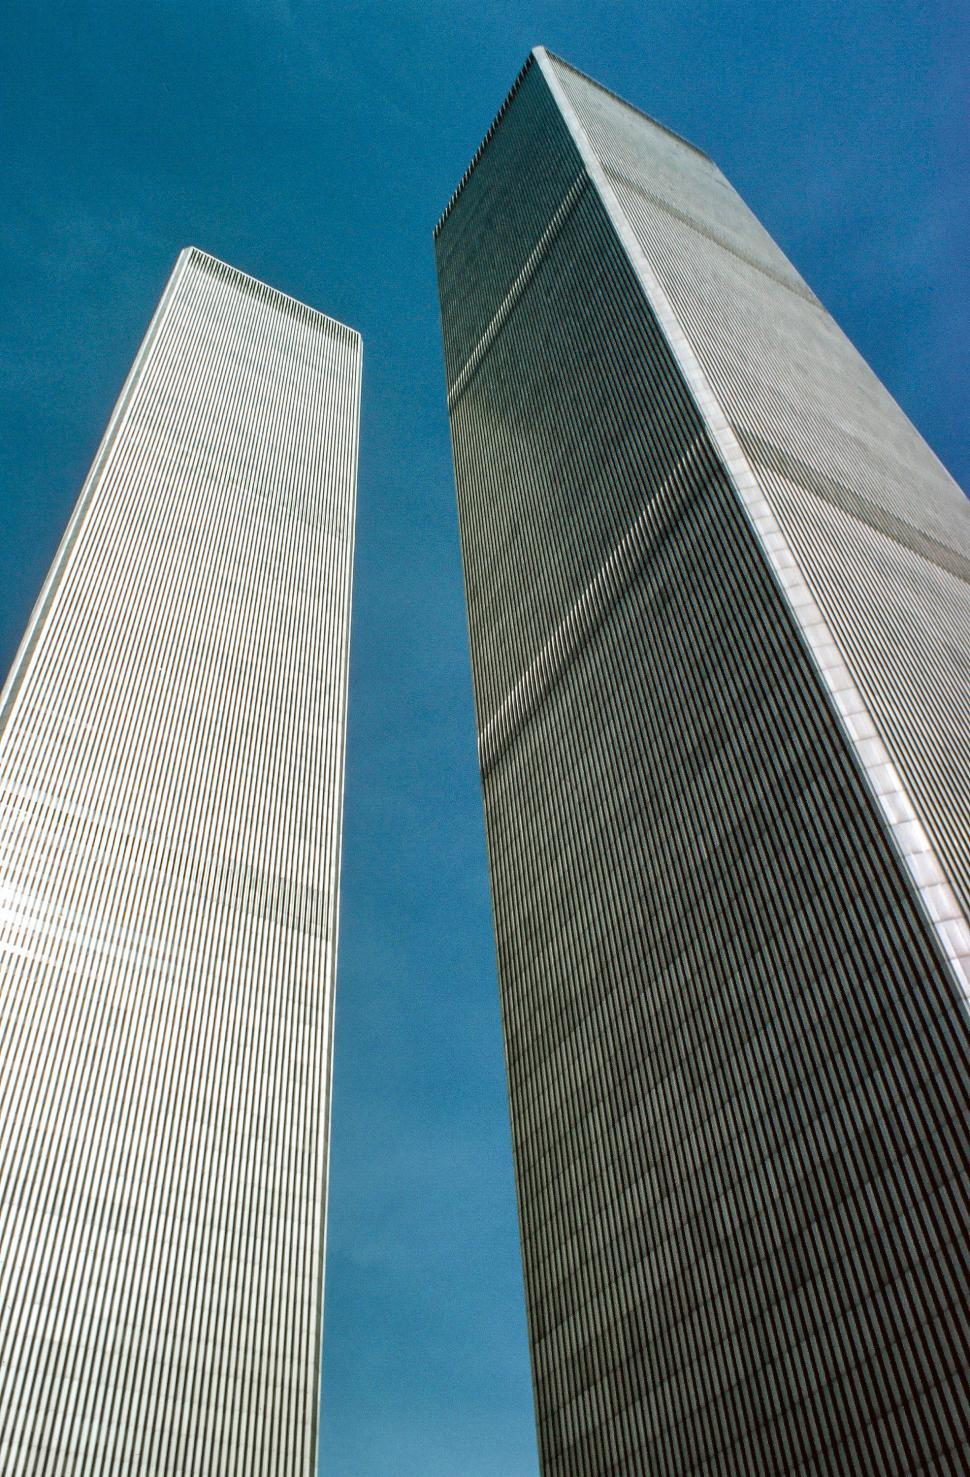 Download Free Stock Photo of World Trade Center